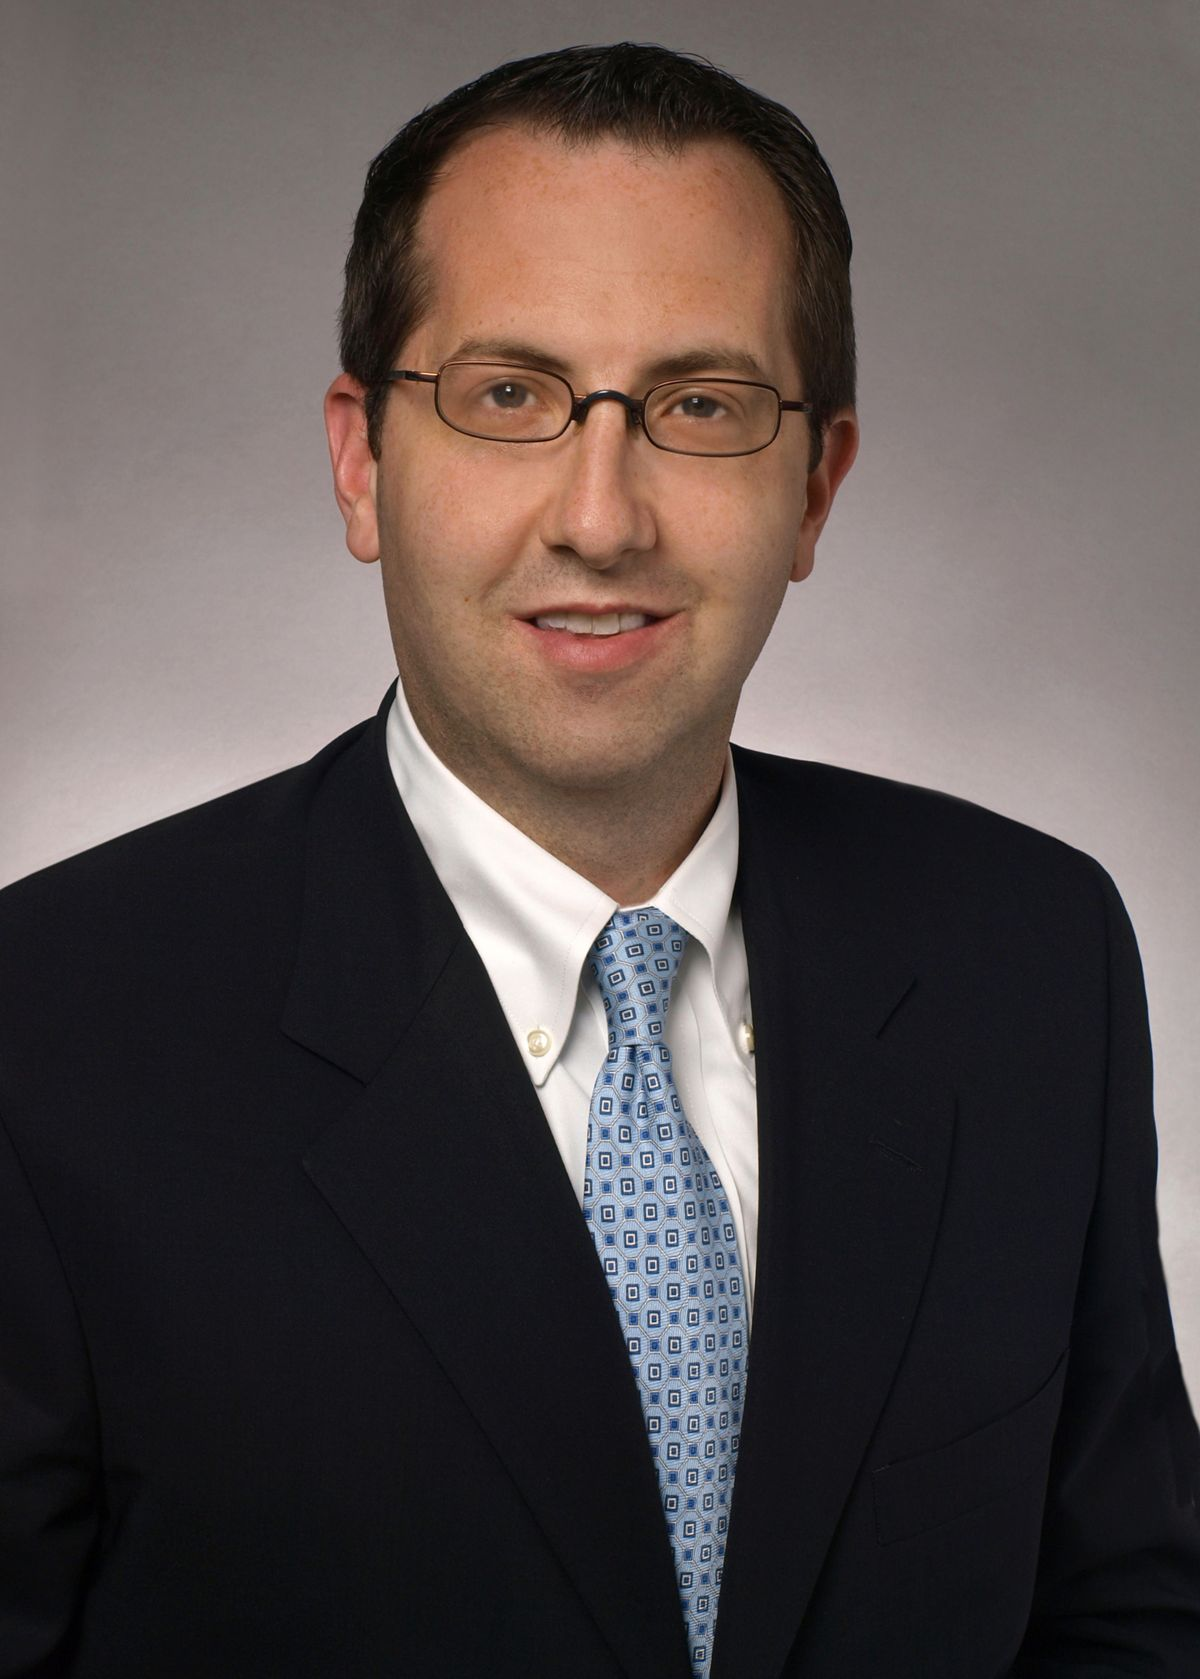 Lincoln Financial Group Names New Head of Finance and Actuarial for Group Benefits Business, Lincoln Financial Group